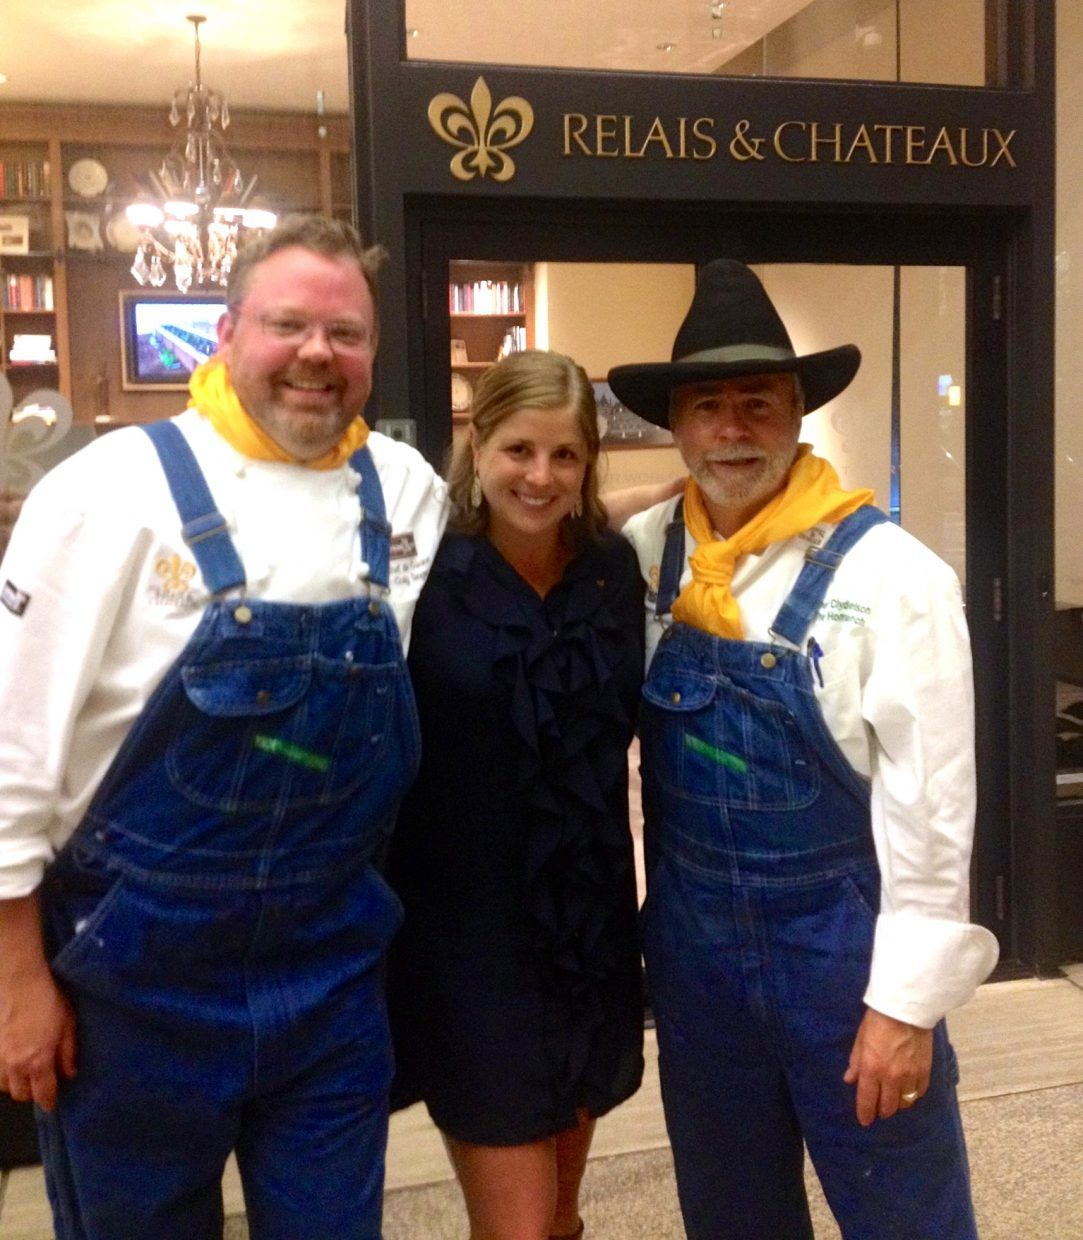 From left, chef de cuisine Craig Singer, marketing coordinator Laura Fisher and executive chef Clyde Nelson pose while at the Relais & Châteaux office for a press dinner in New York City.